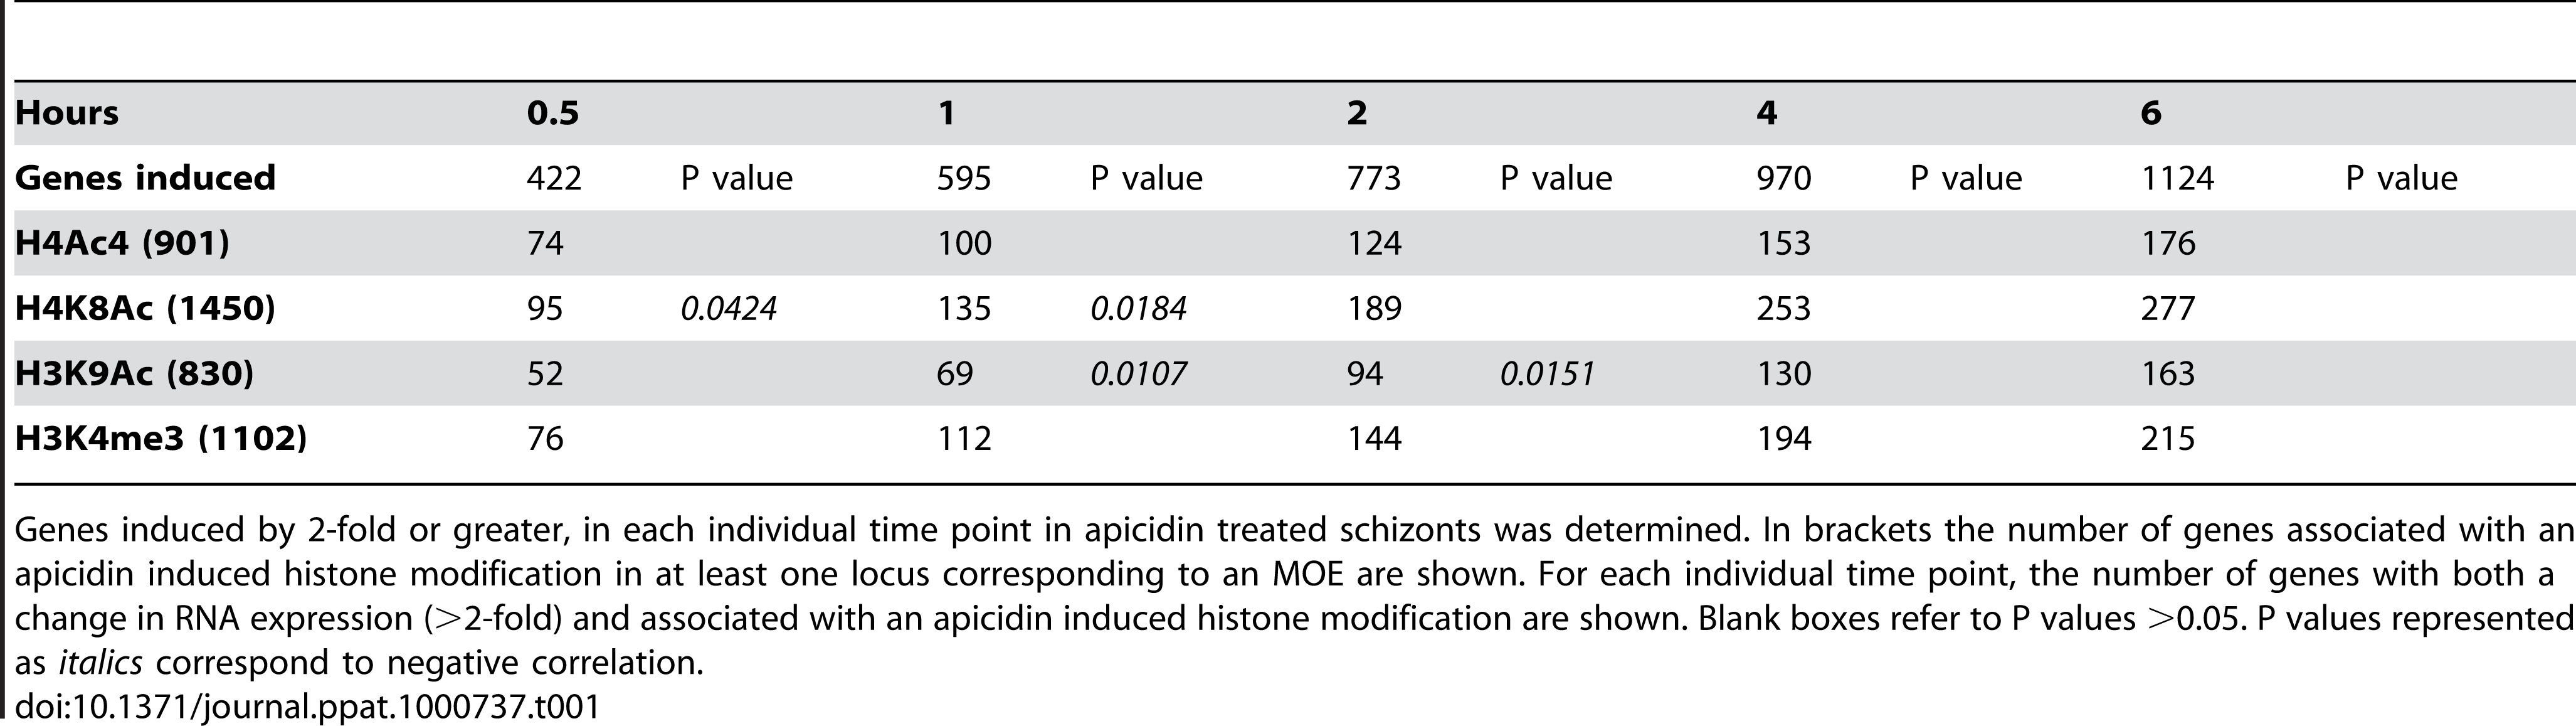 Association between the genetic loci with altered histone modifications and genes induced by apicidin.